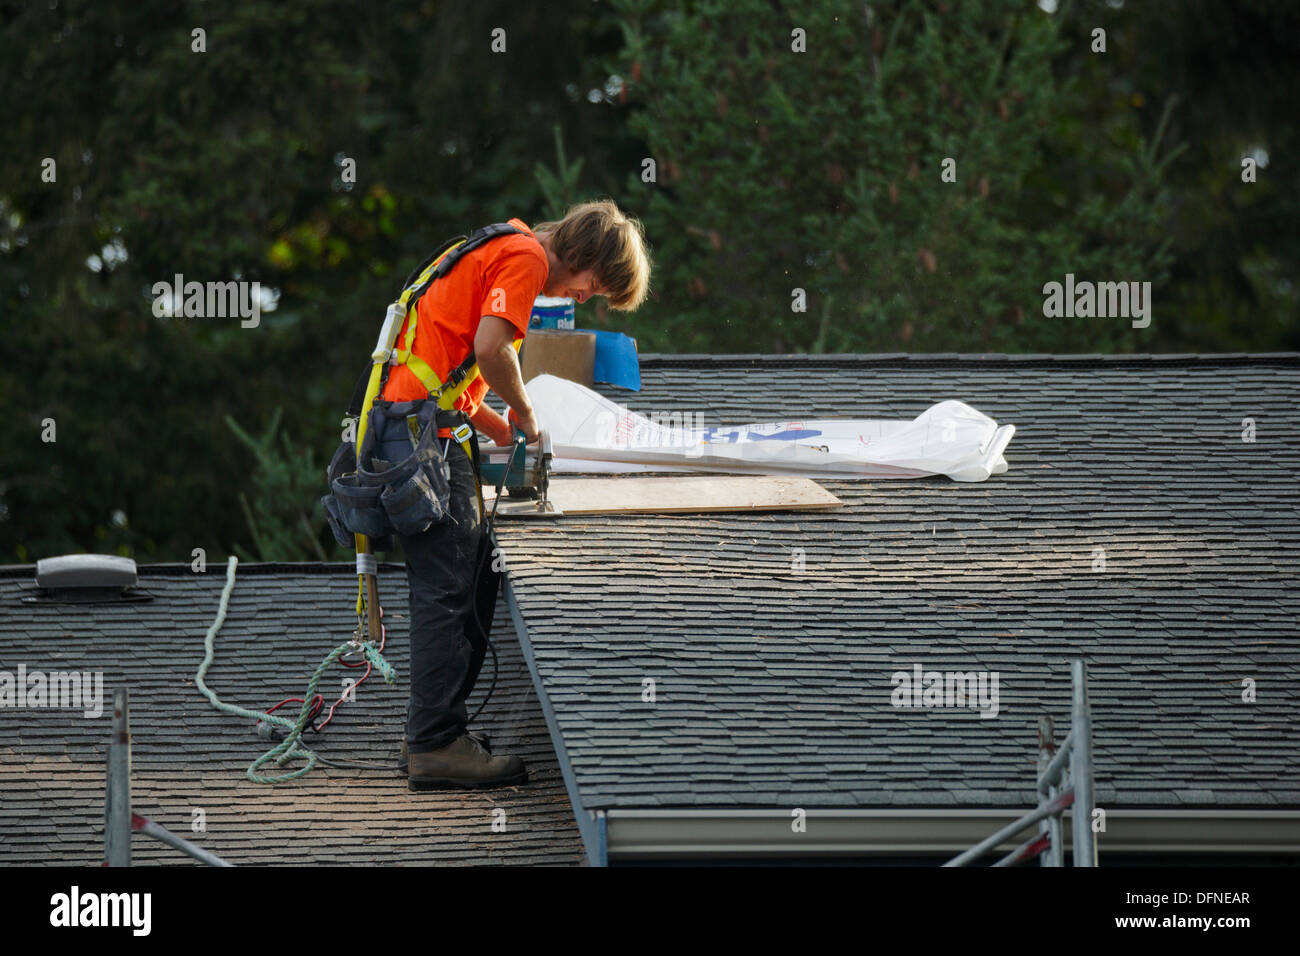 Roofer working on condominium roof while tethered-Victoria, British Columbia, Canada. - Stock Image